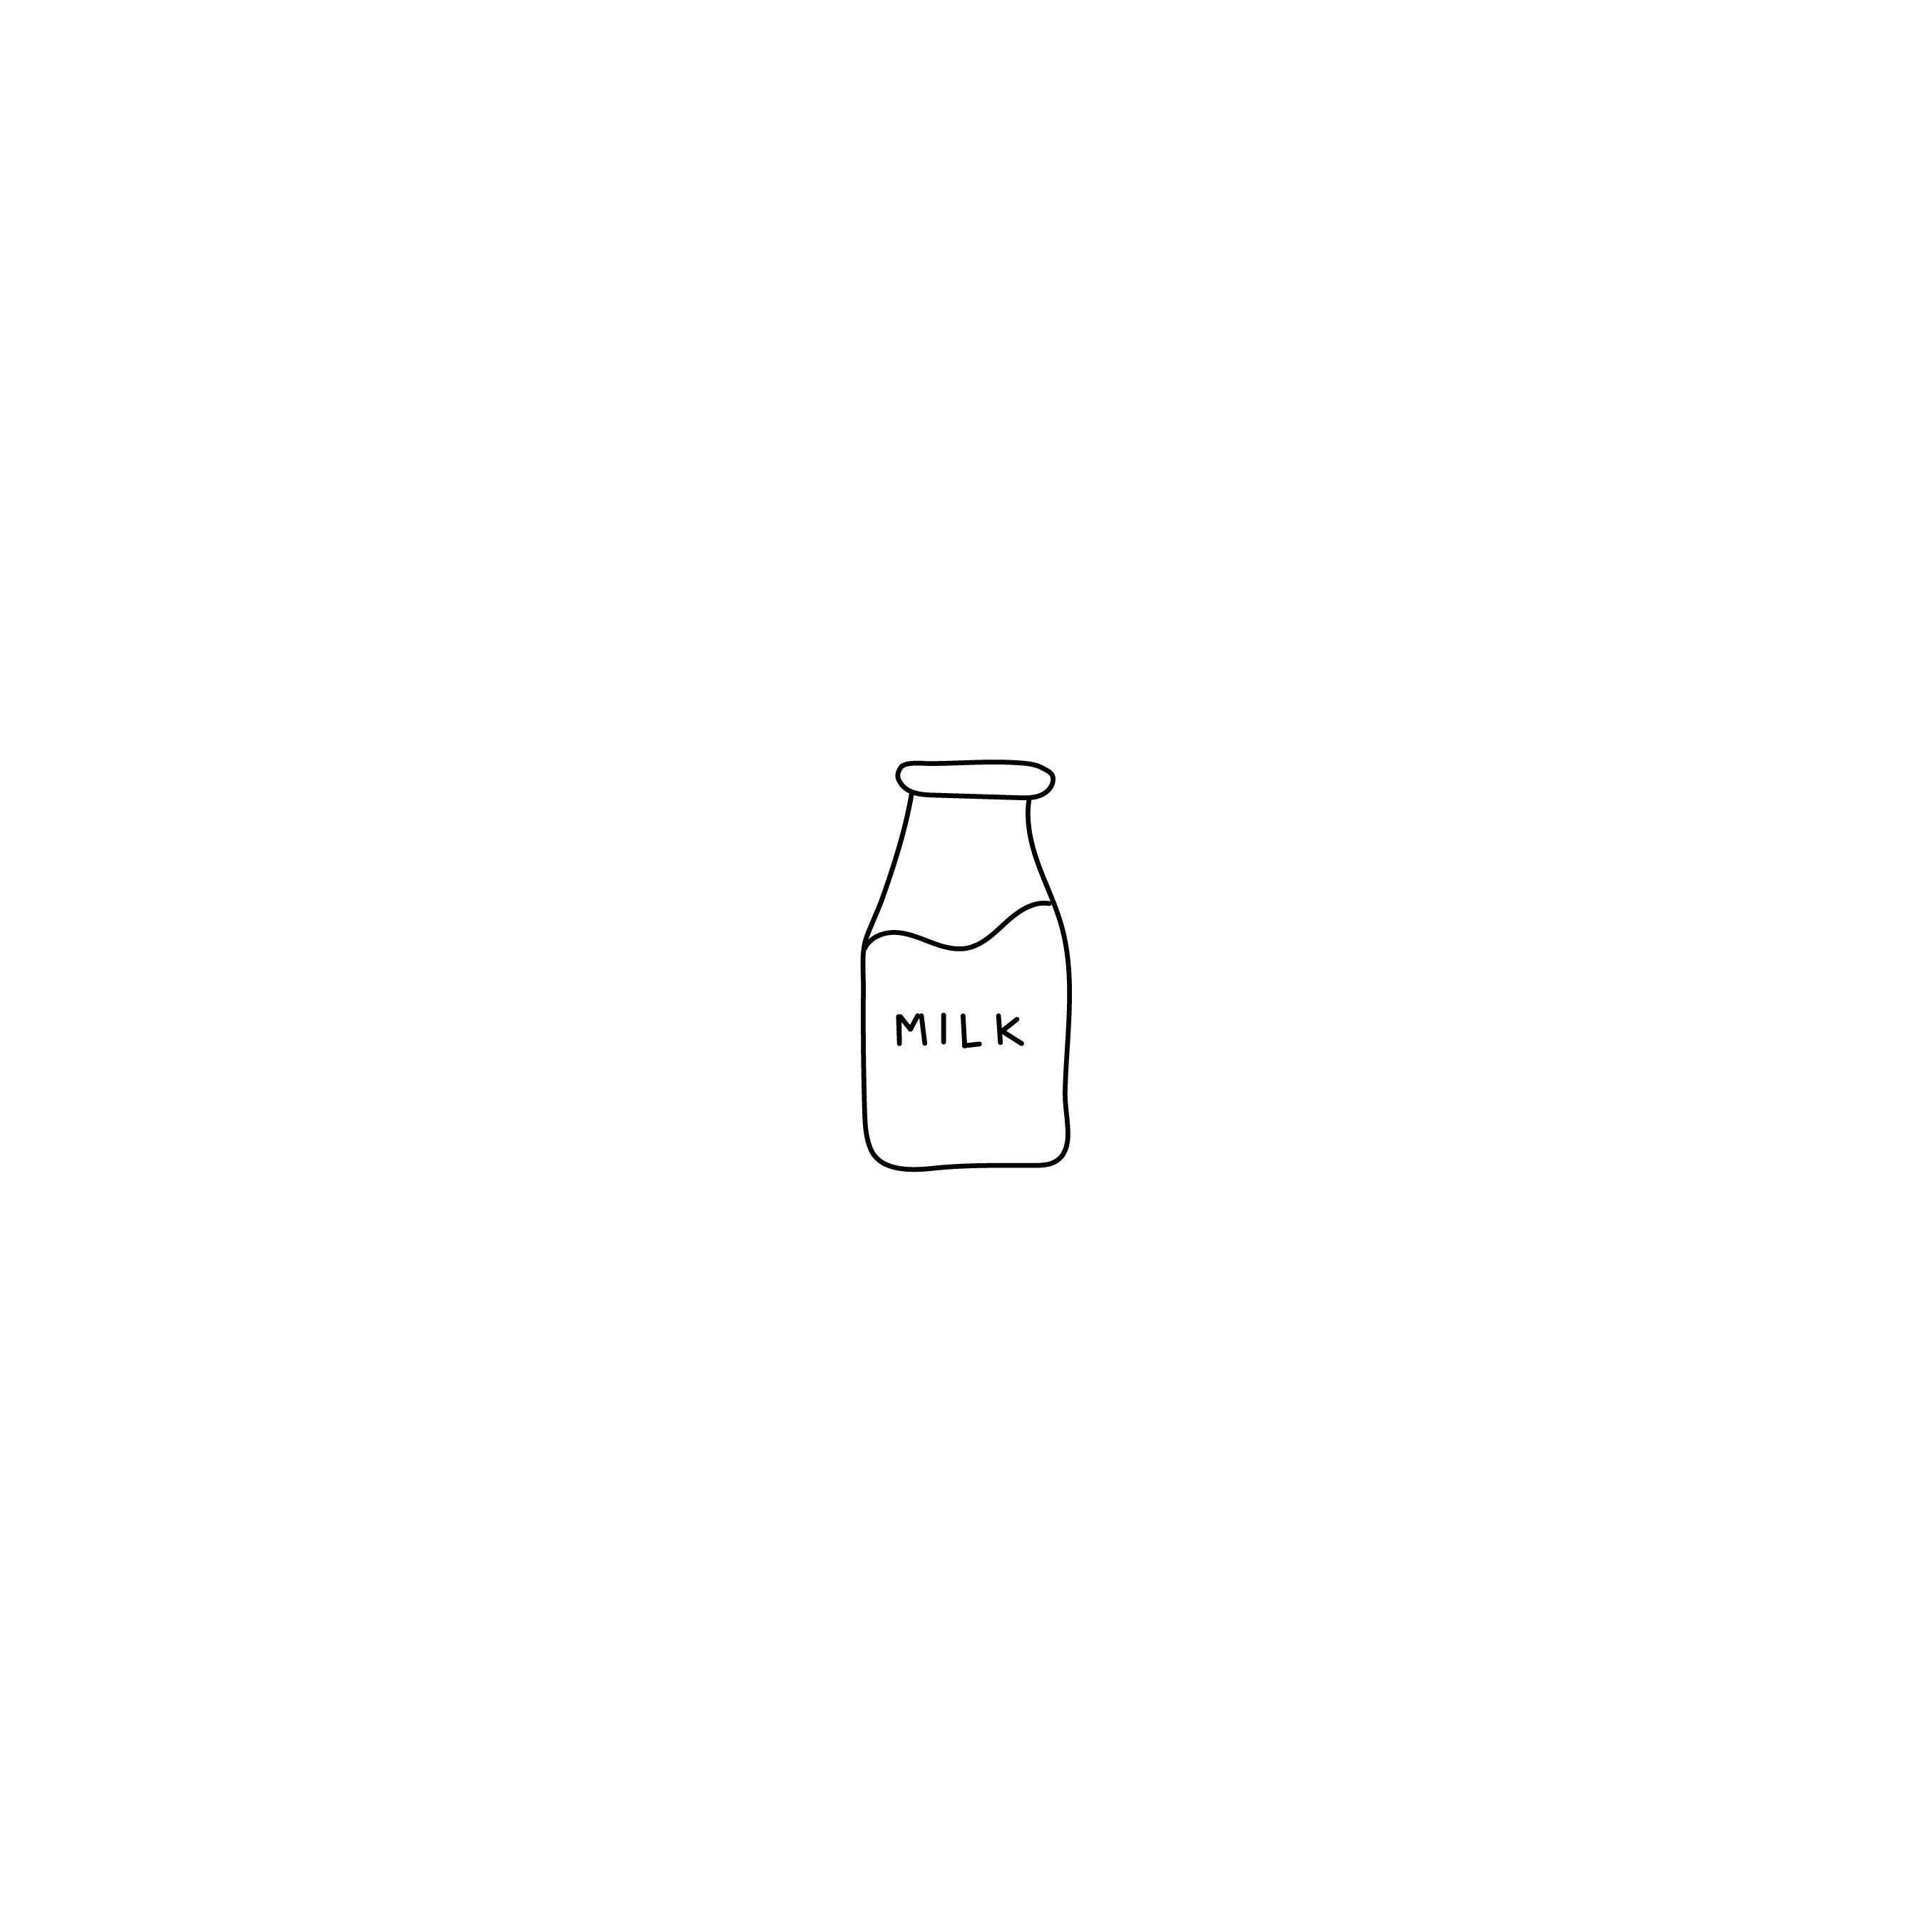 Milk Dairy Illustration Drawing Doodle Design Logos Premade Logo